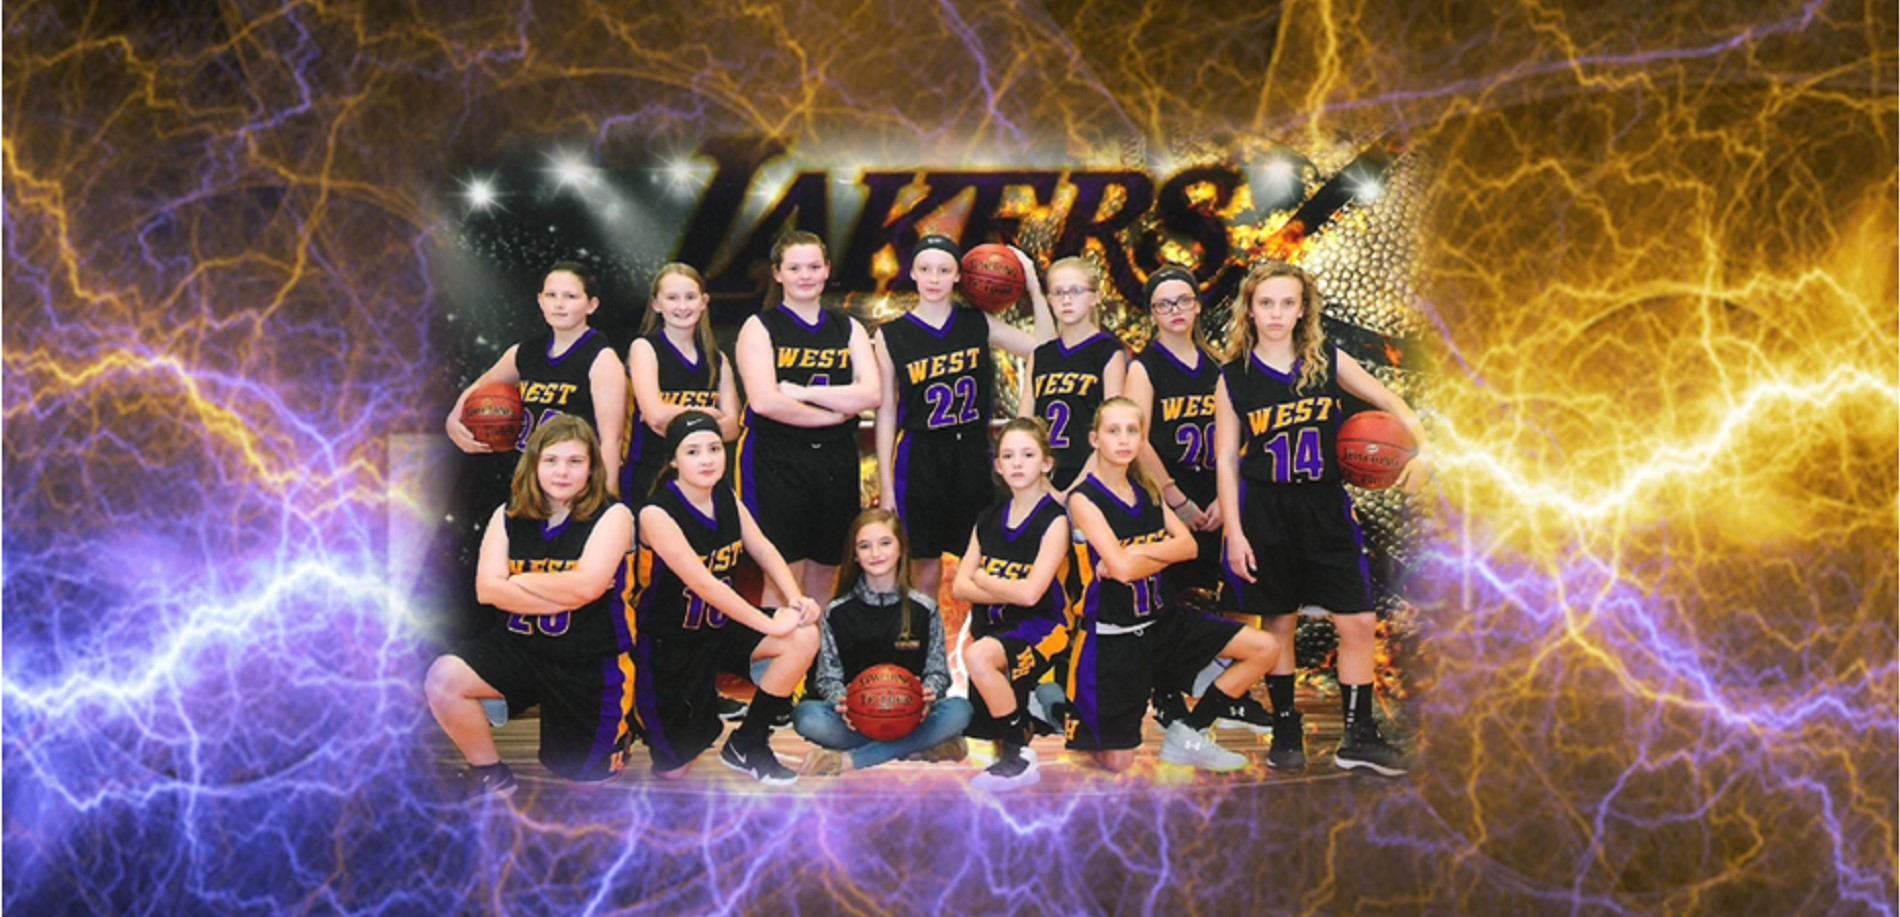 2018 WHMS 7th Grade Girls Basketbal - Image Courtesy: Capture Creative Images